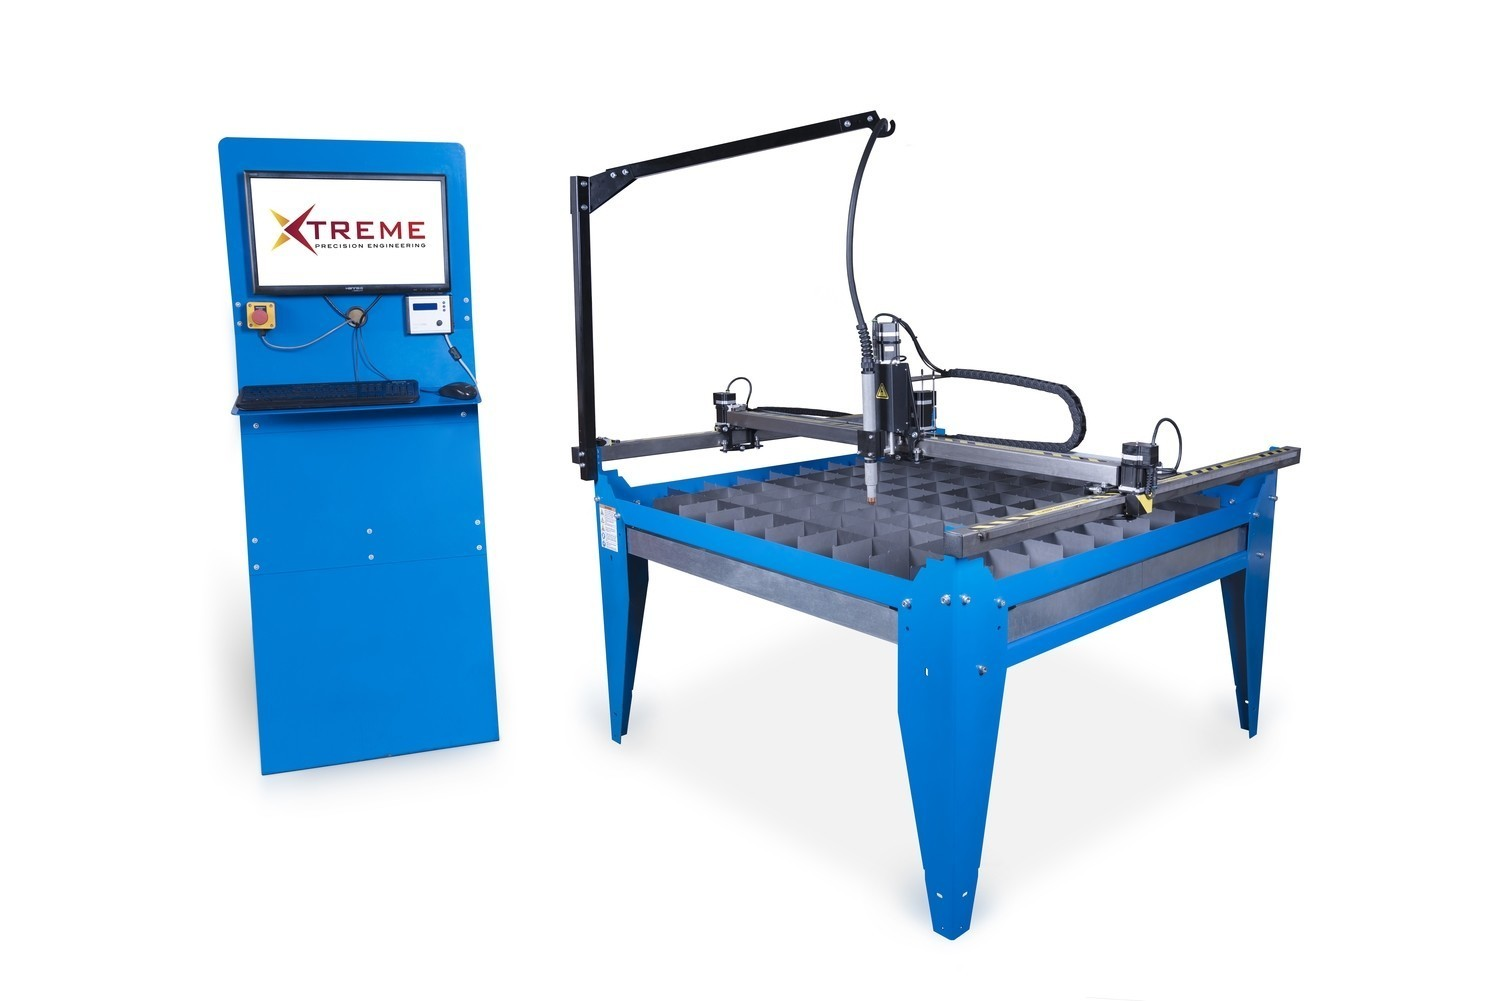 4x4 CNC Plasma Cutting Table